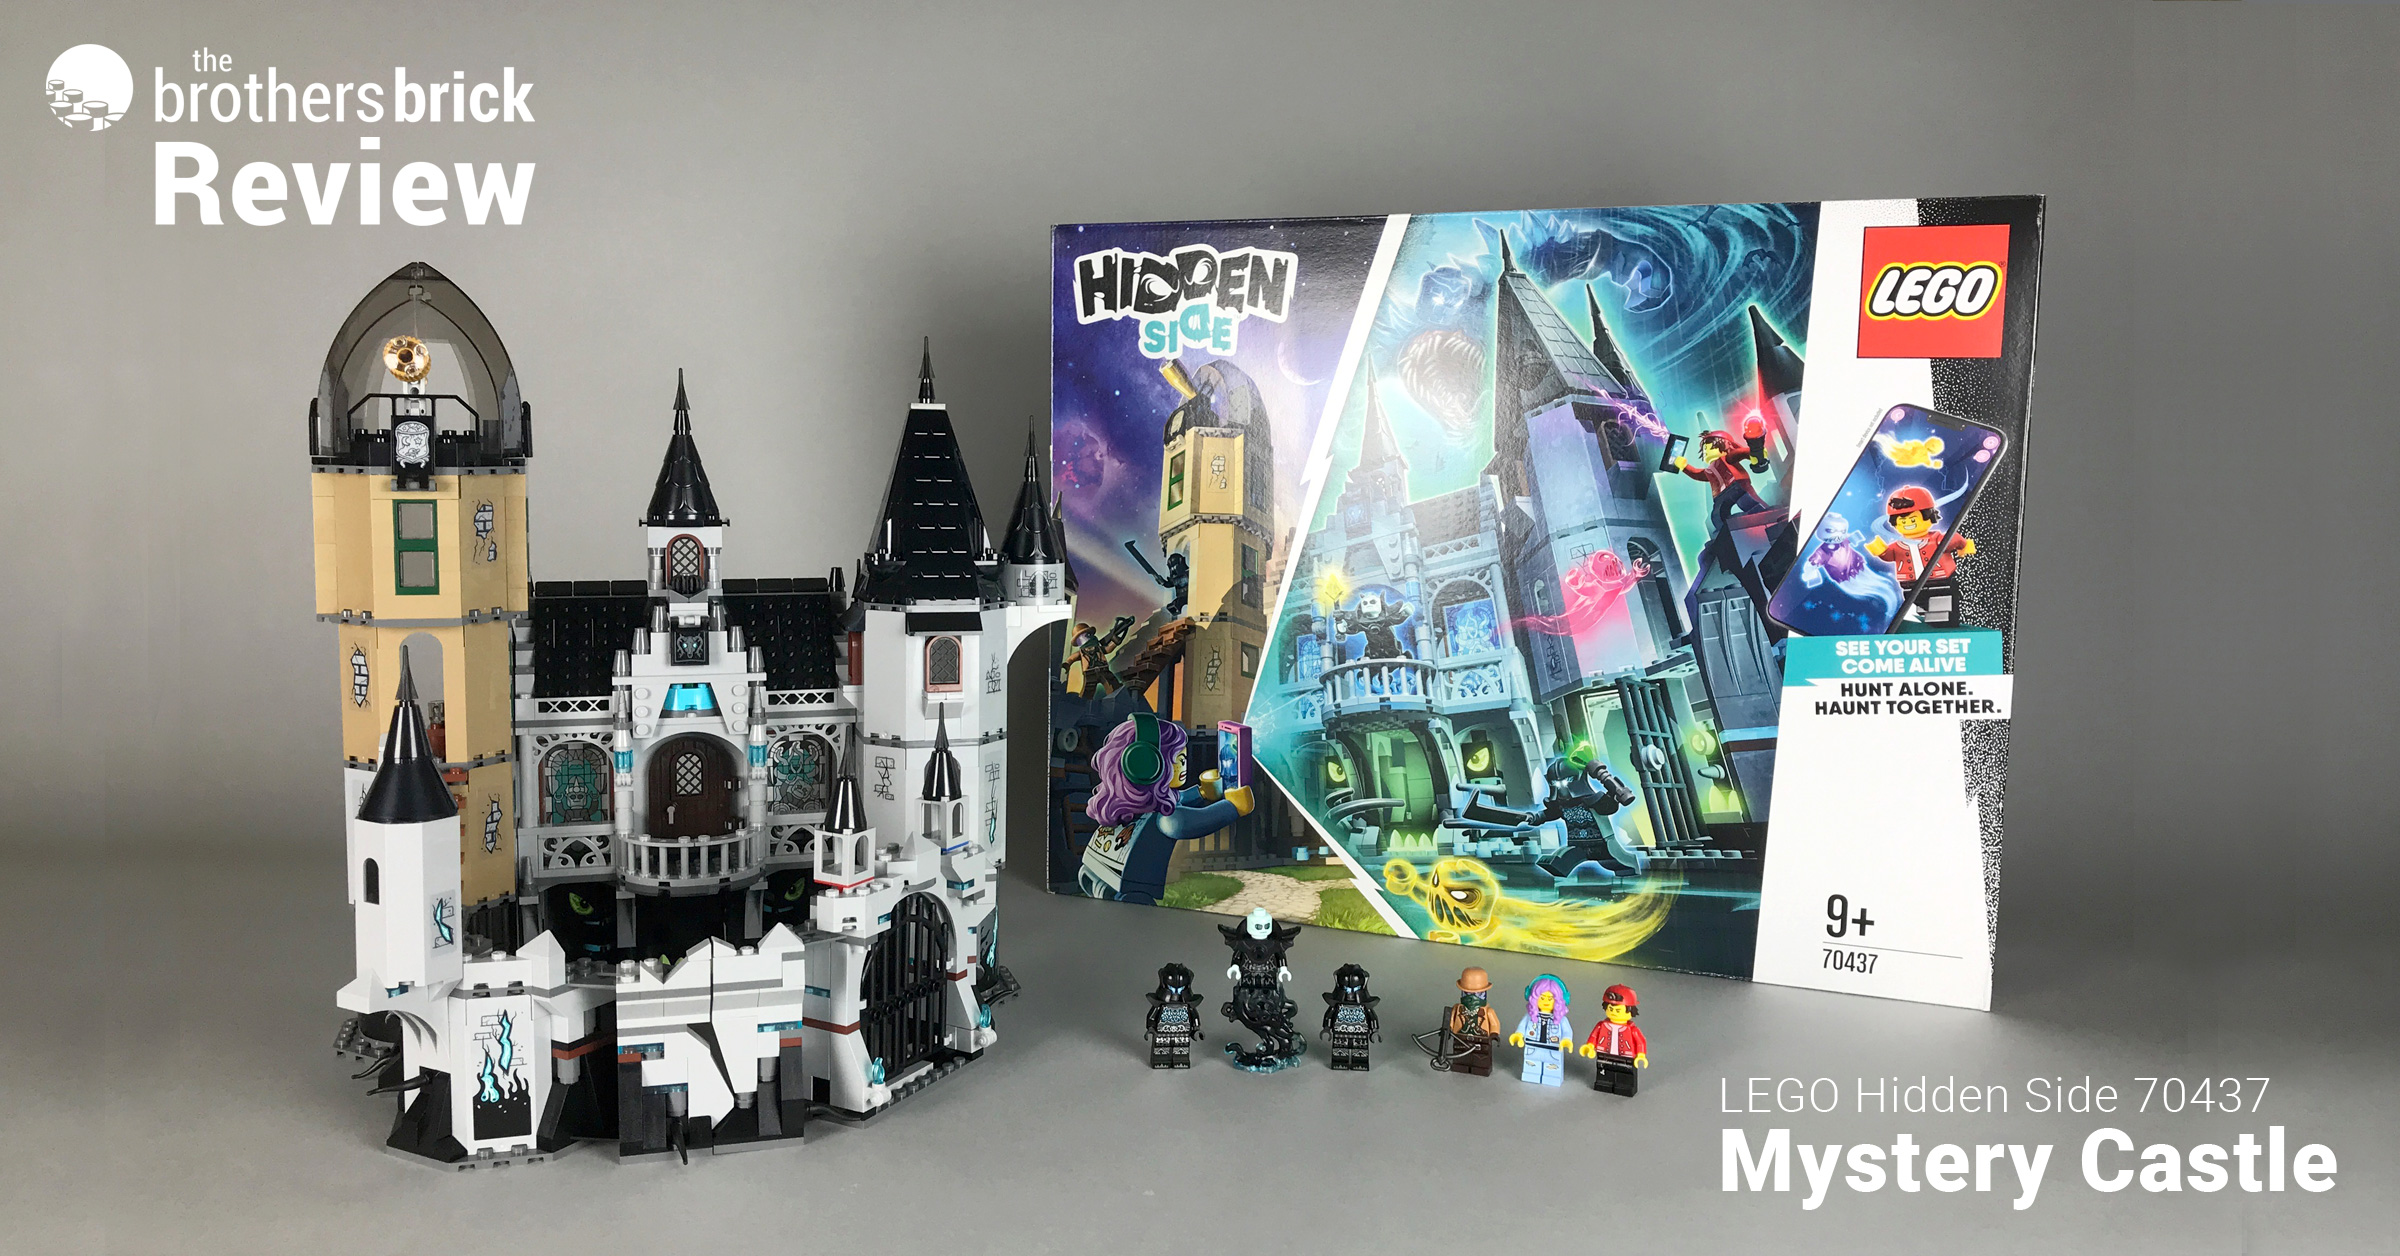 Lego Hidden Side 70437 Mystery Castle Review The Brothers Brick The Brothers Brick